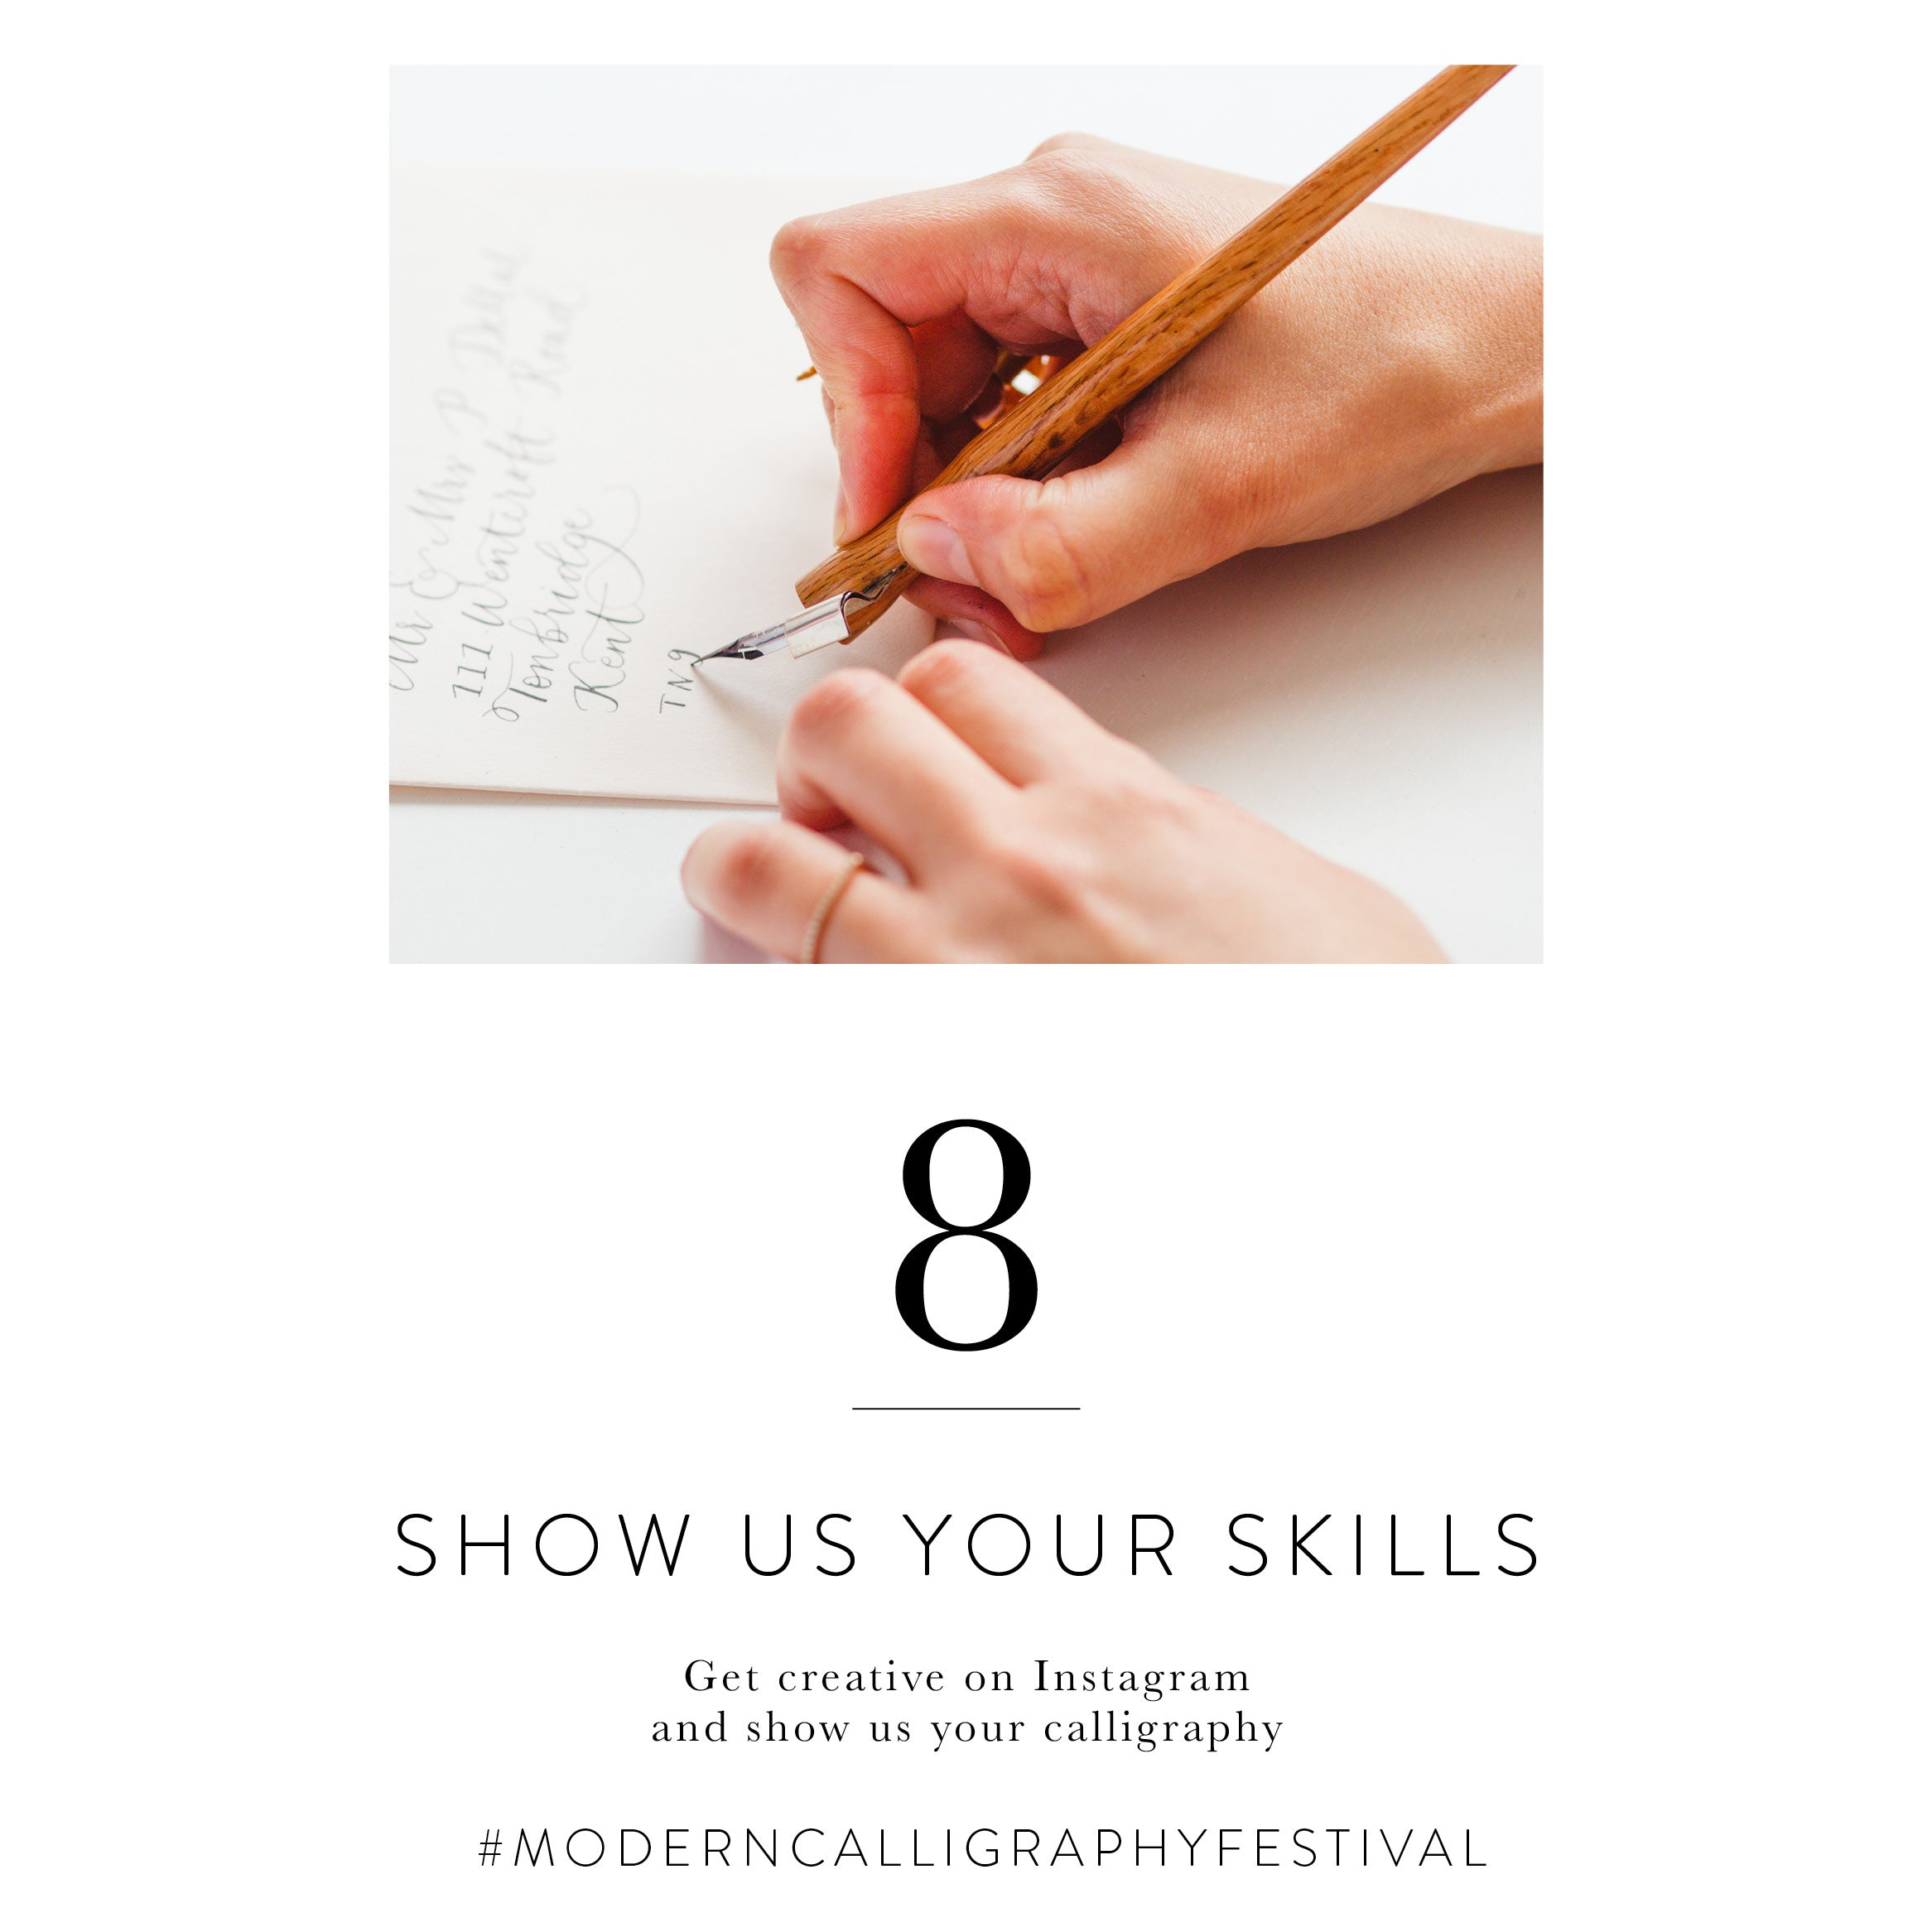 Quill London | Modern Calligraphy Festival | Top 10 Things To Do This Modern Calligraphy Festival | Show Us Your Skills And Ge Creative With Calligraphy For A Chance To Be Reposted On Our Instagram Stories